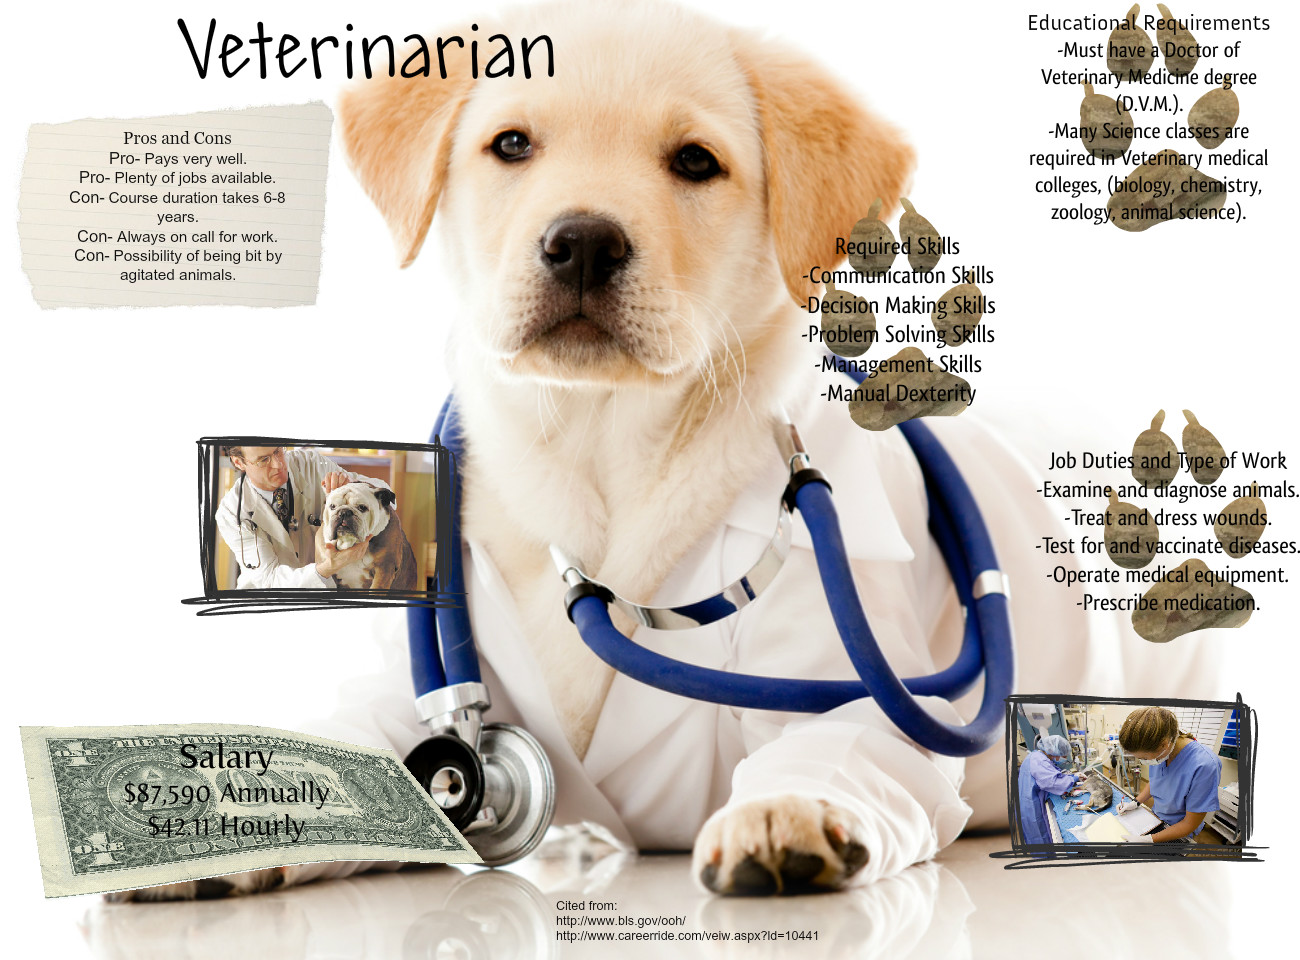 Veterinary Glog: text, images, music, video | Glogster EDU